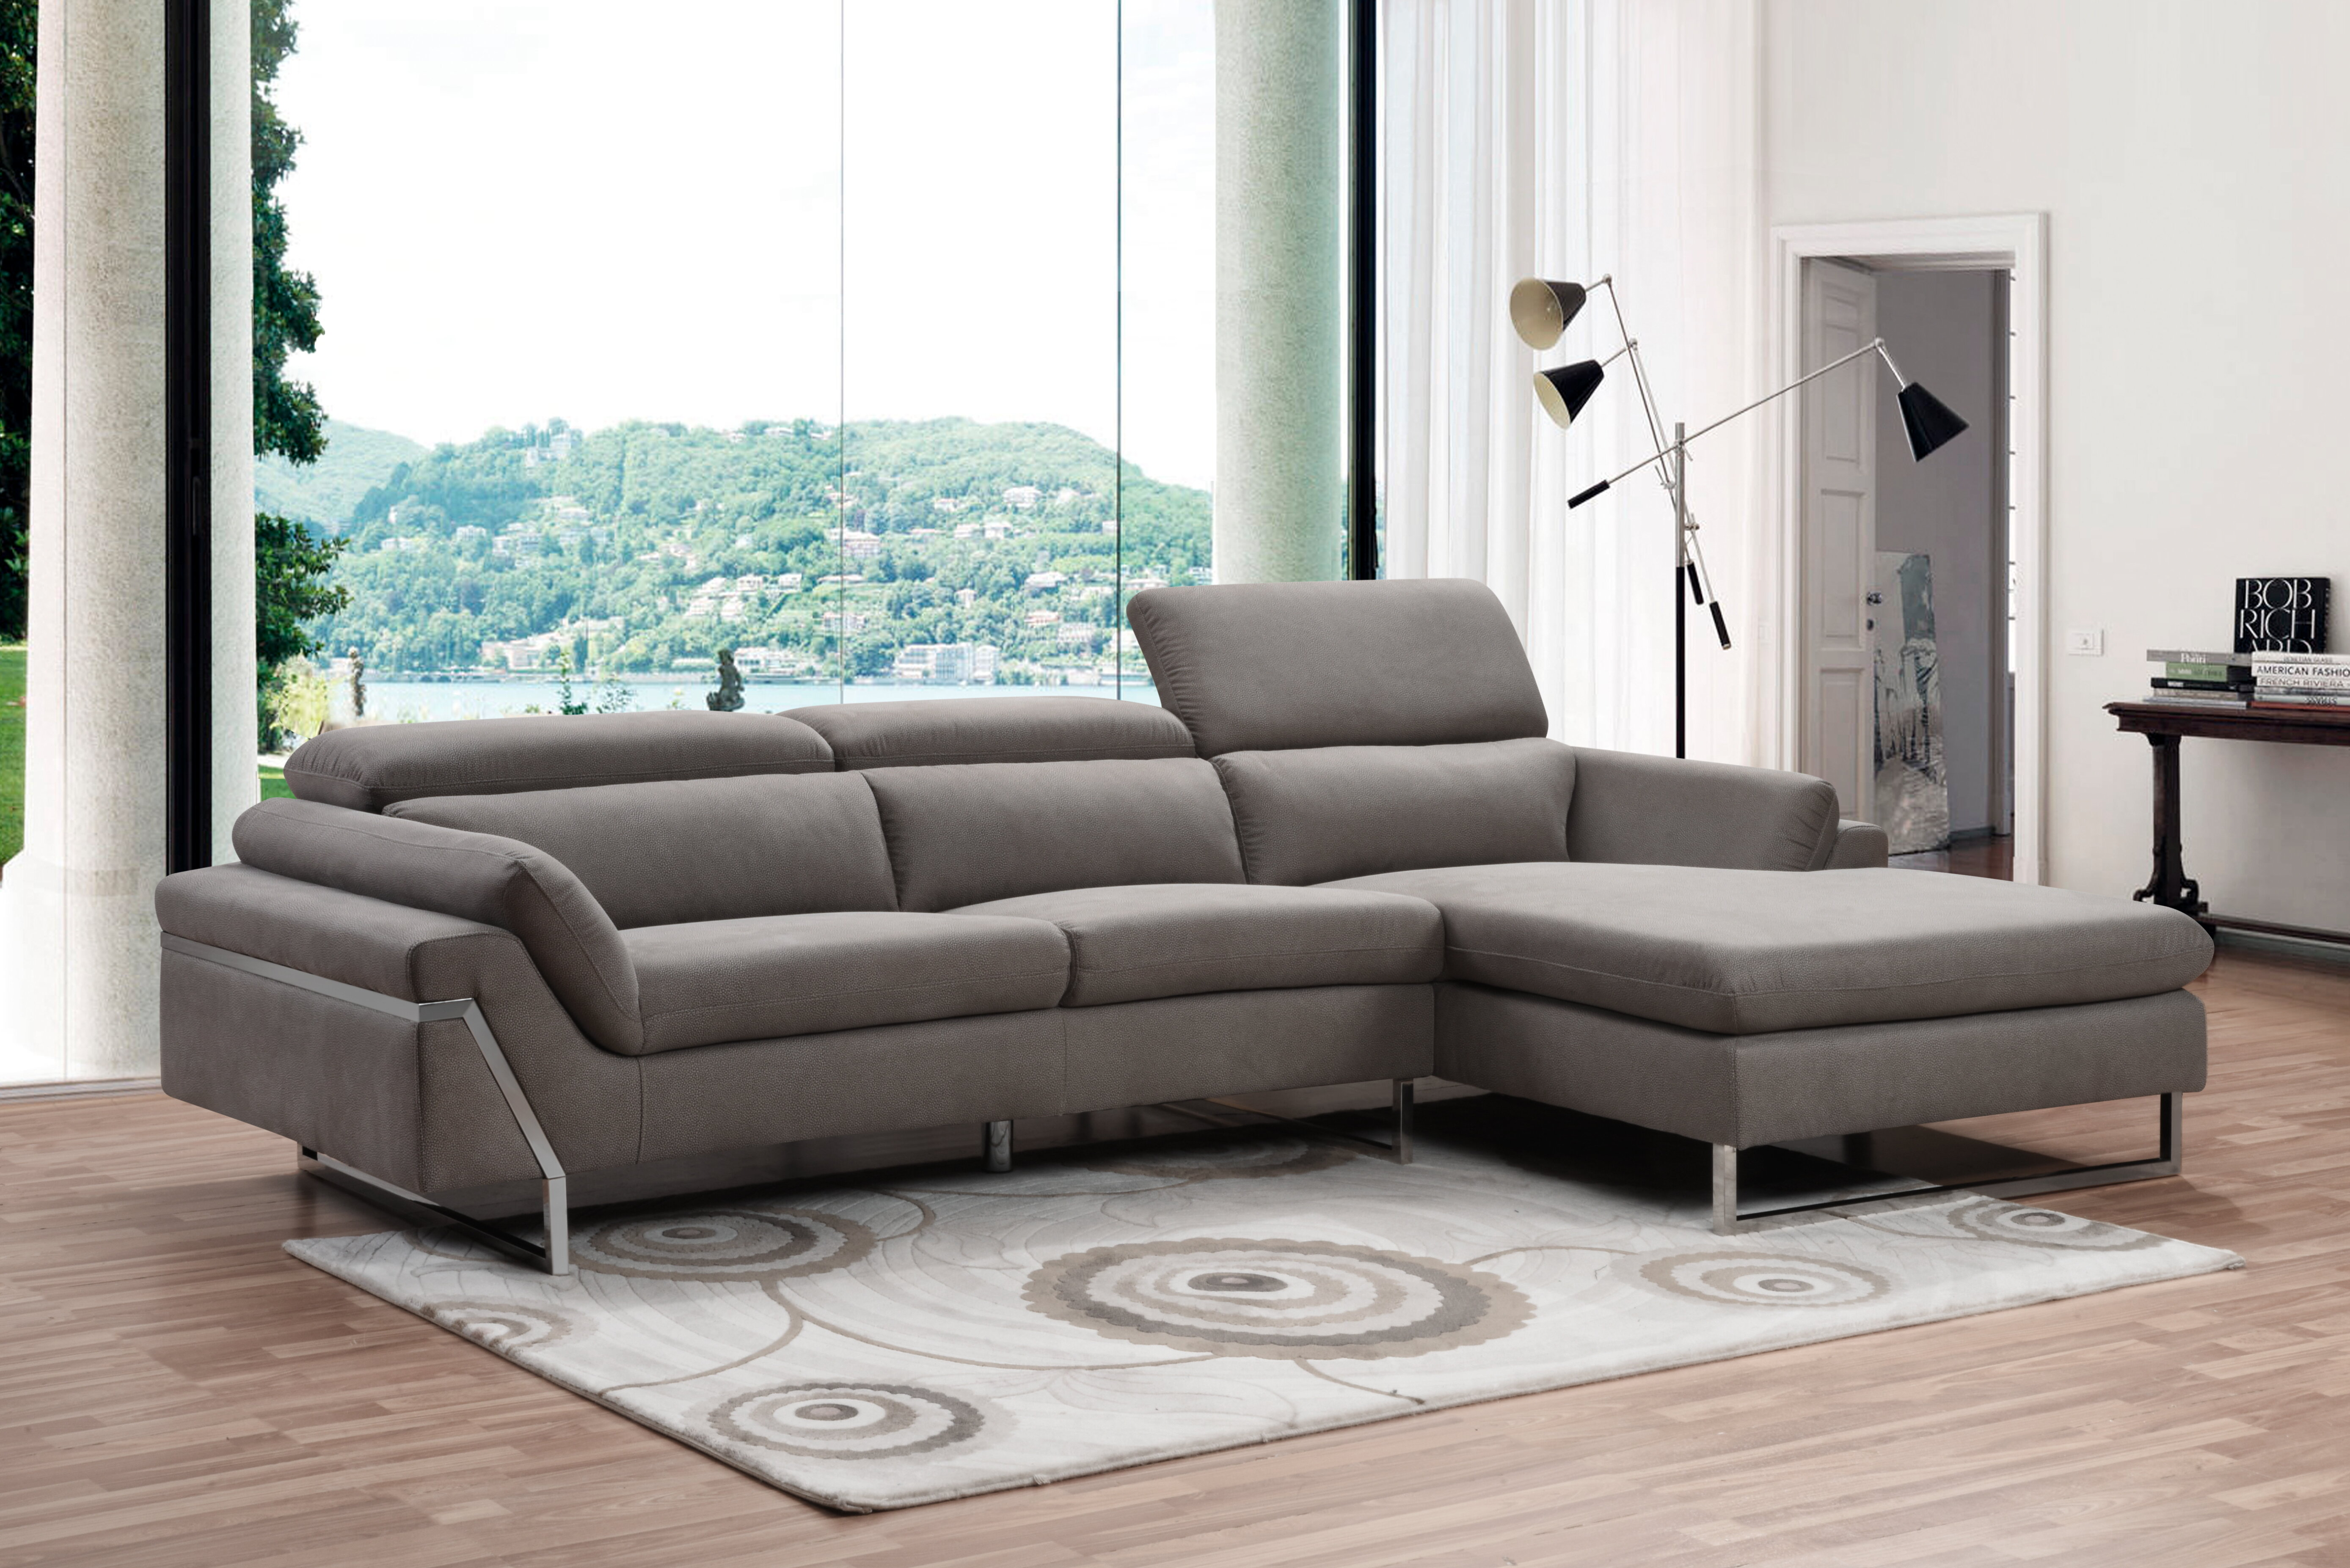 Orren Ellis Light Grey Air Leather Sectional Sofa With Adjustable Headrest Wayfair Ca